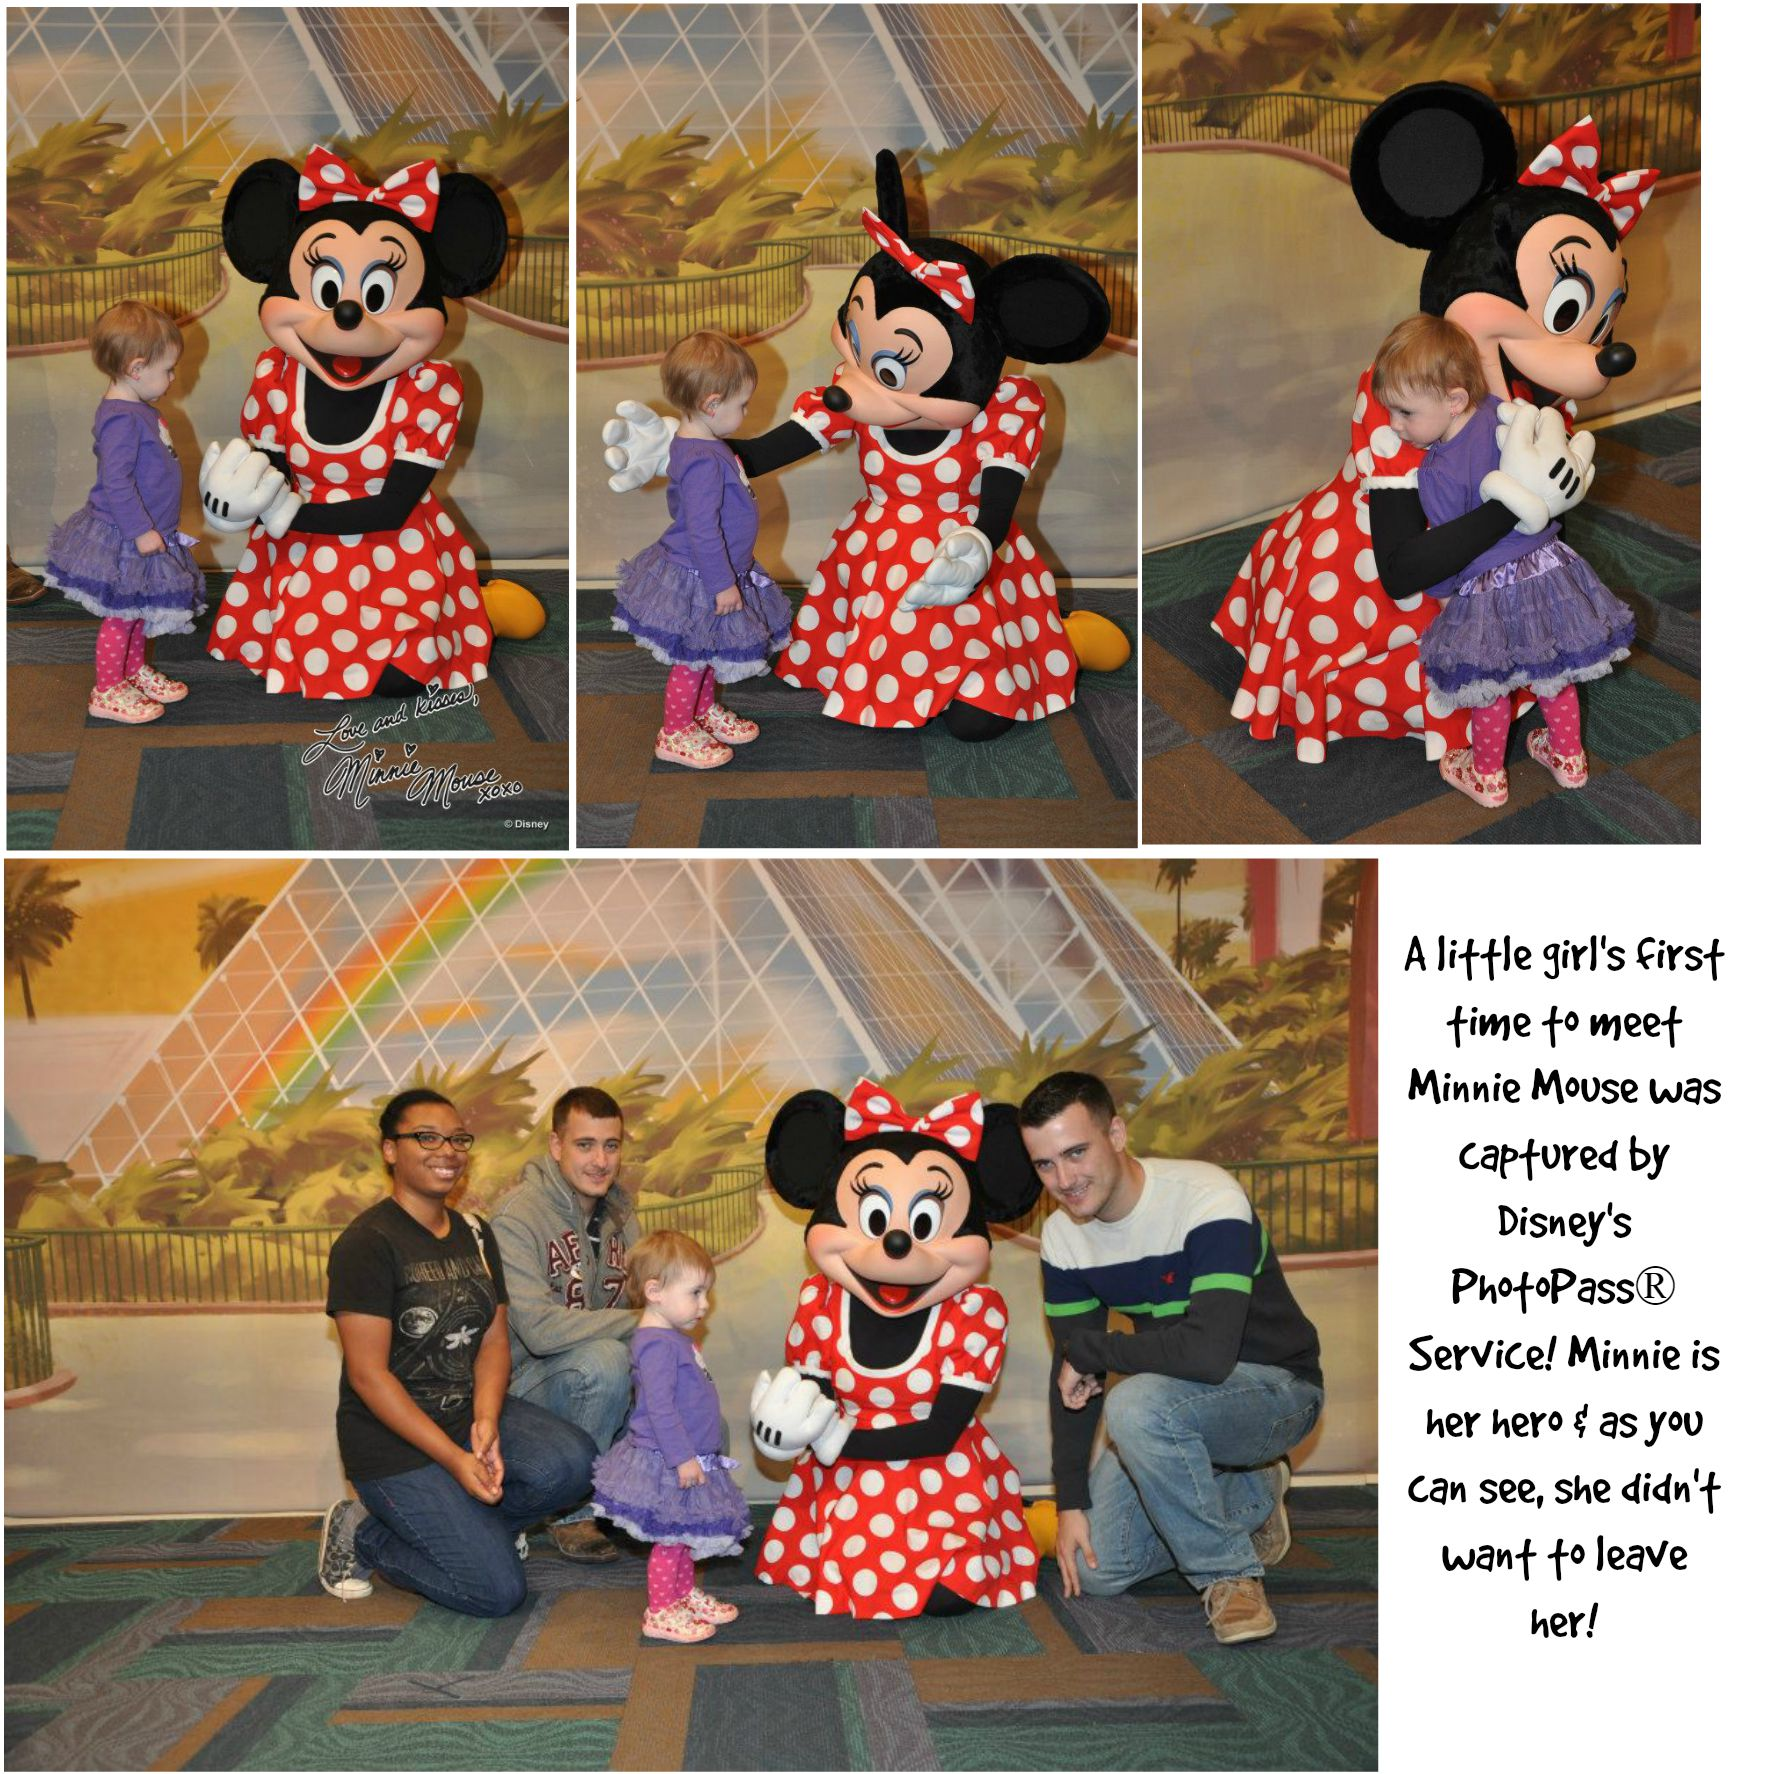 First time to meet Minnie